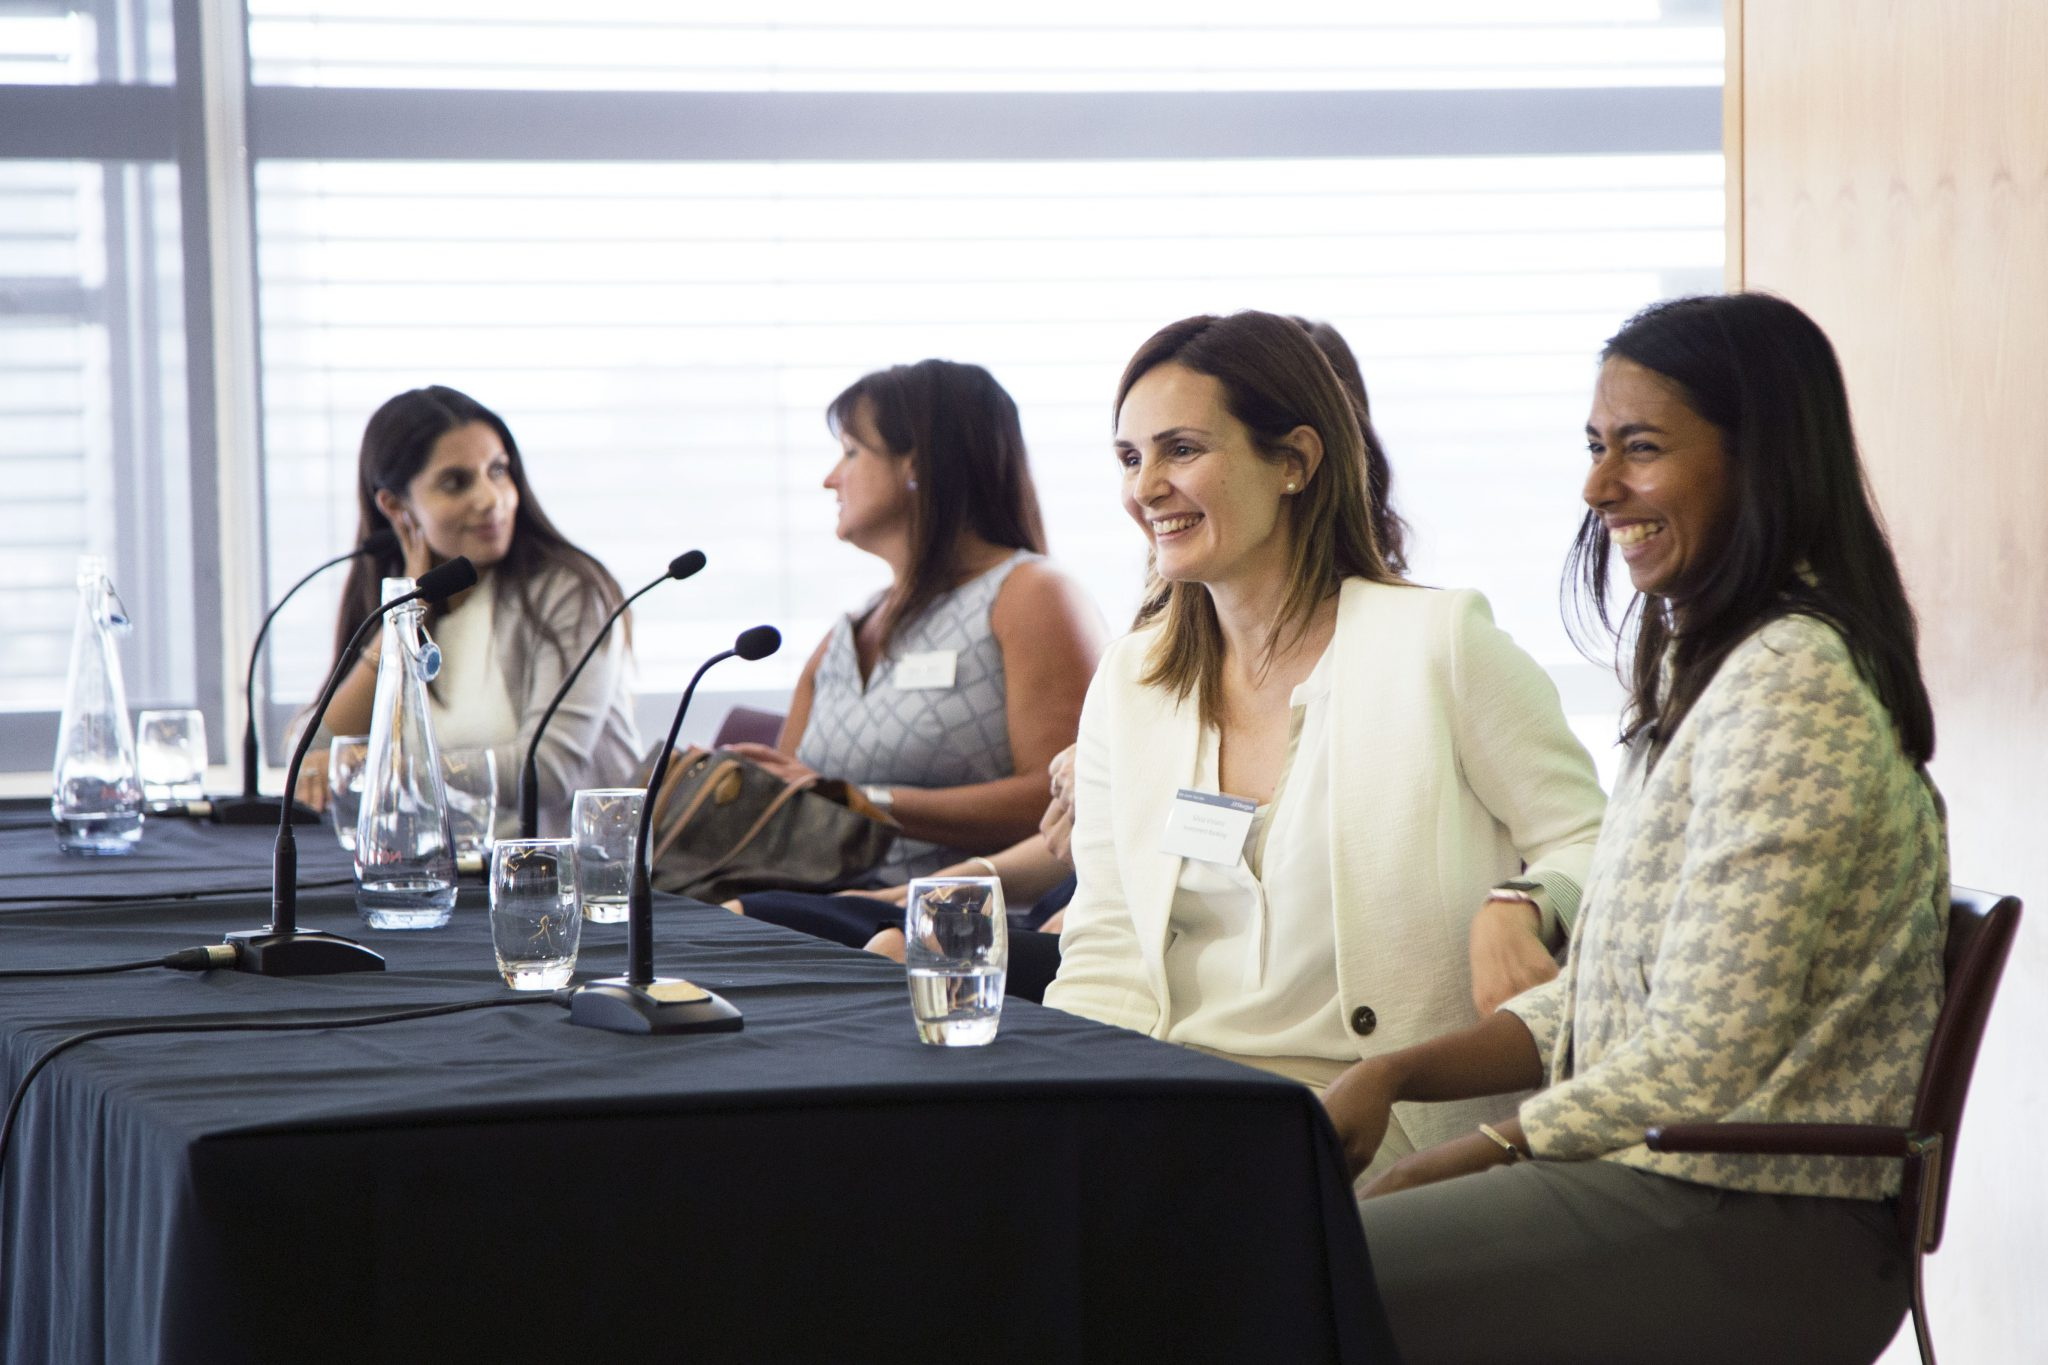 Panel of five female-identifying people sitting and smiling at a panel discussion desk during a FreshLook event